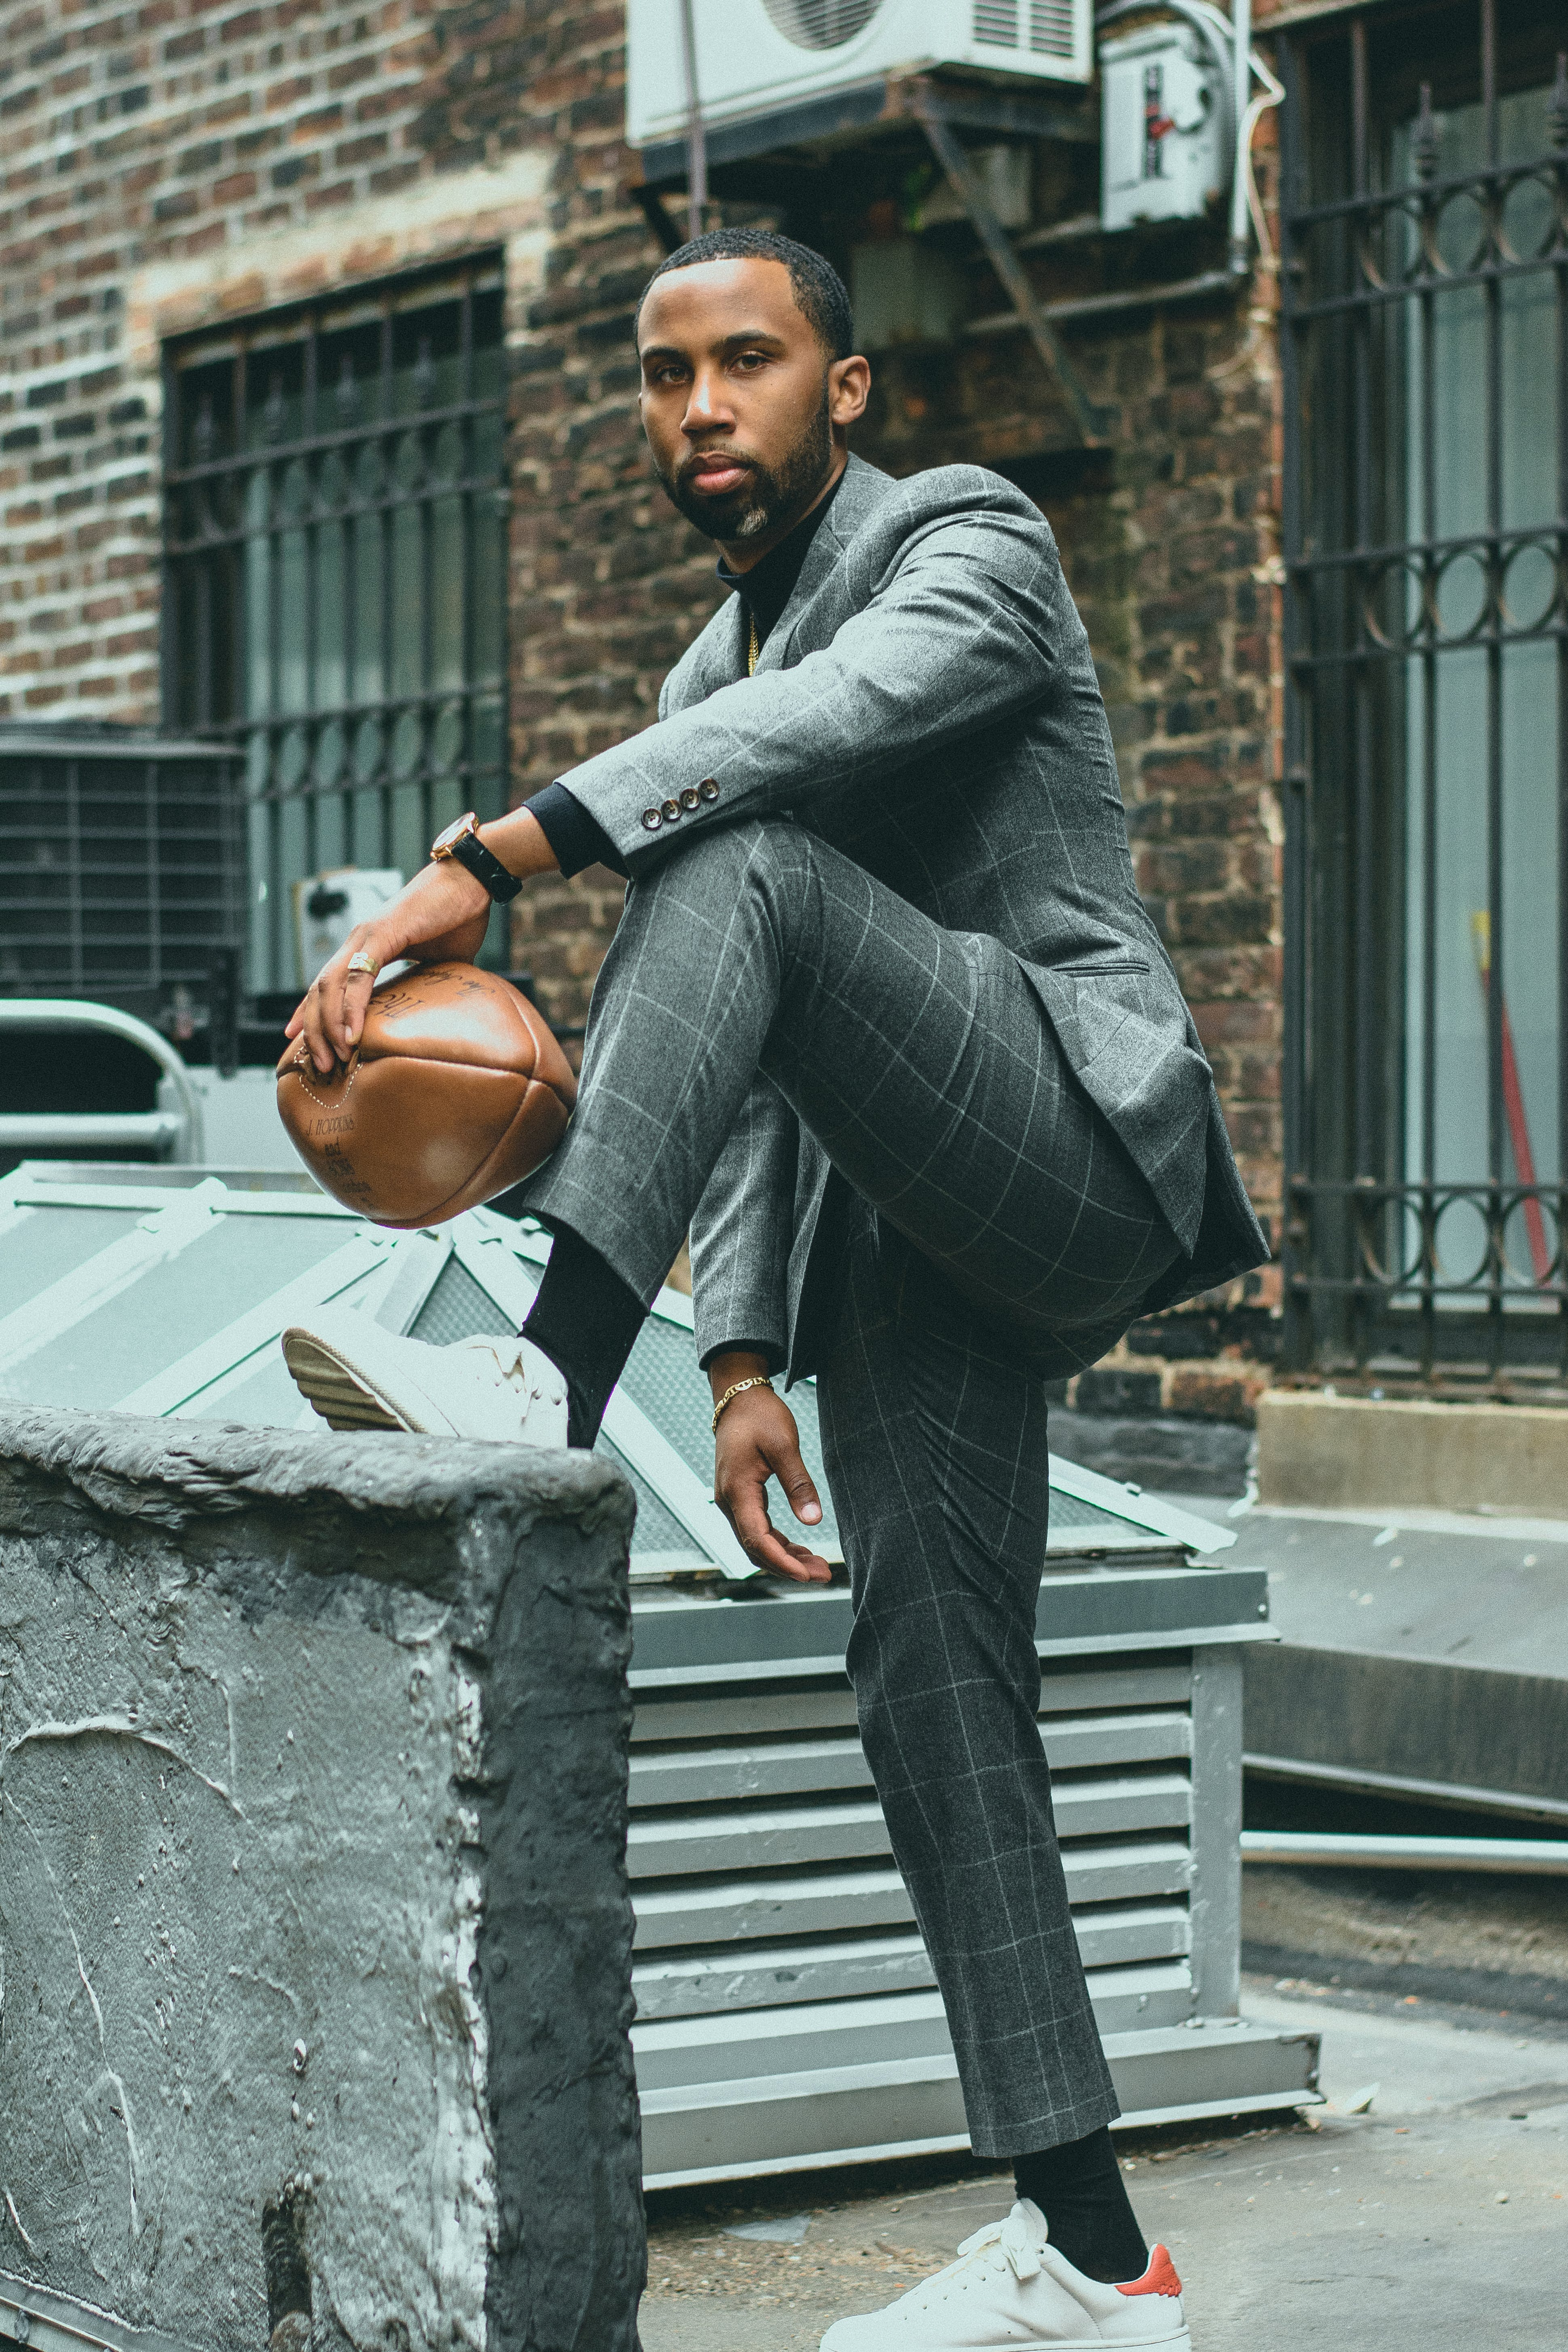 Men's Gray Suit Holding Brown Football